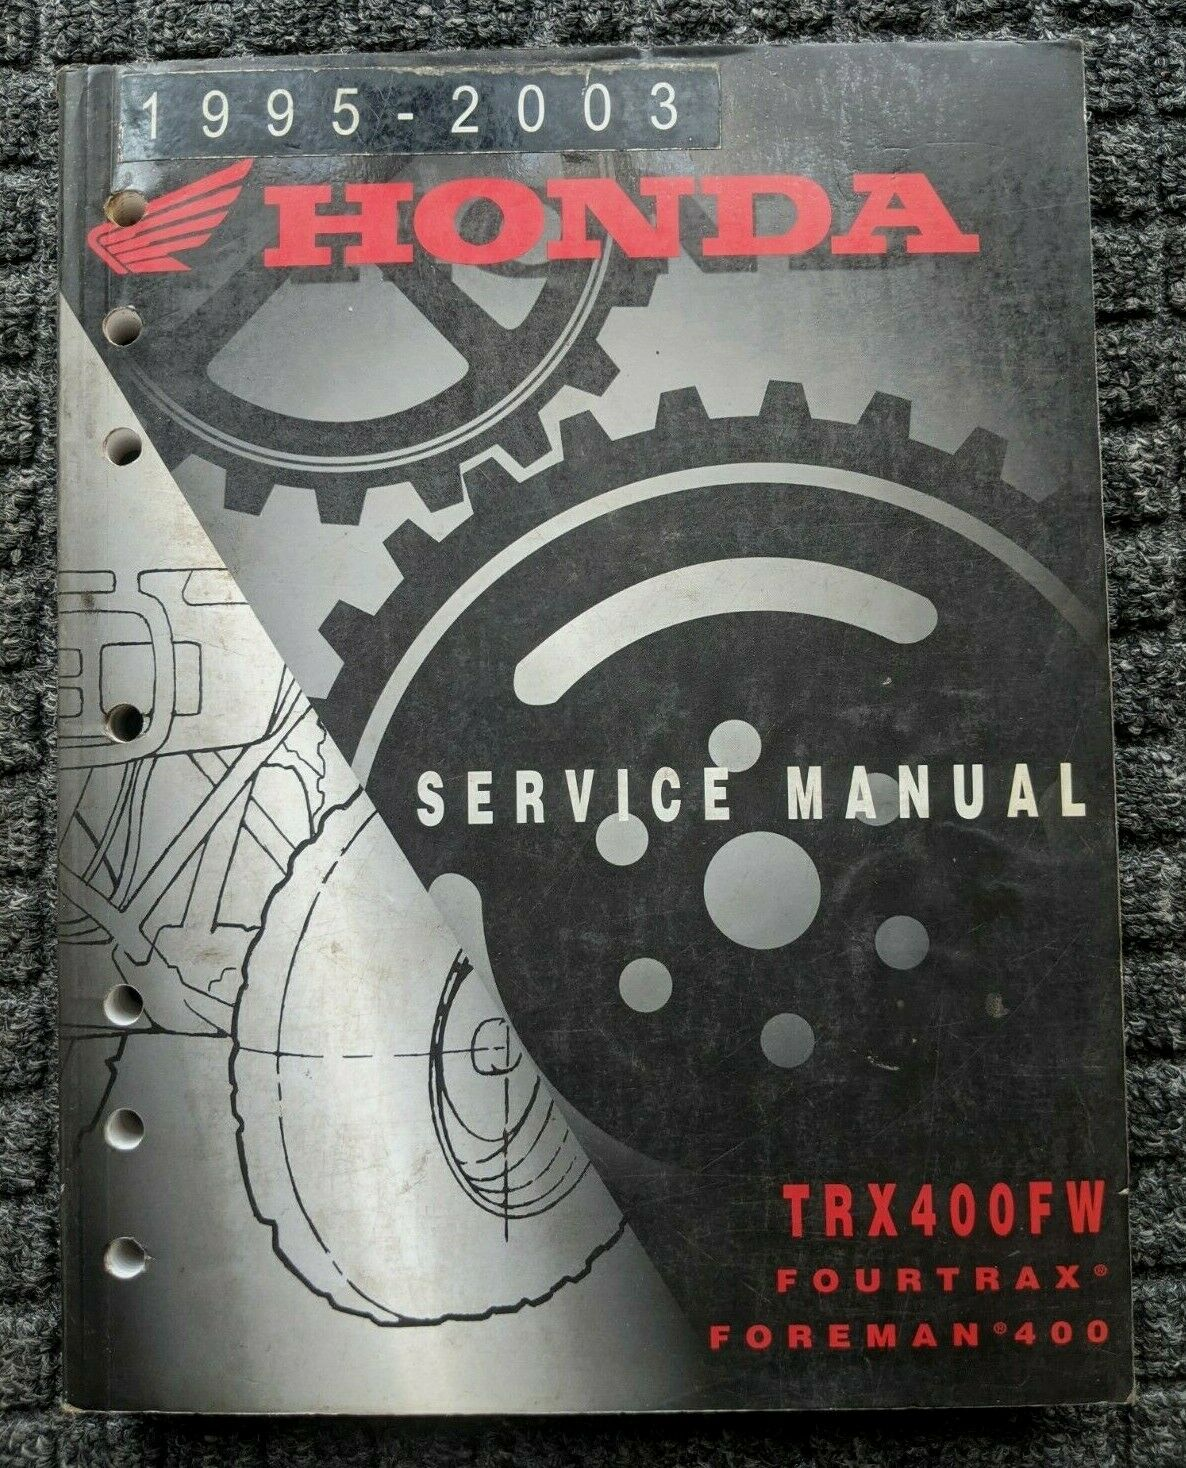 1995 - 2003 Honda Trx400Fw Fourtrax Fourman 400 Service Manual 1 of 1Only 3  available ...